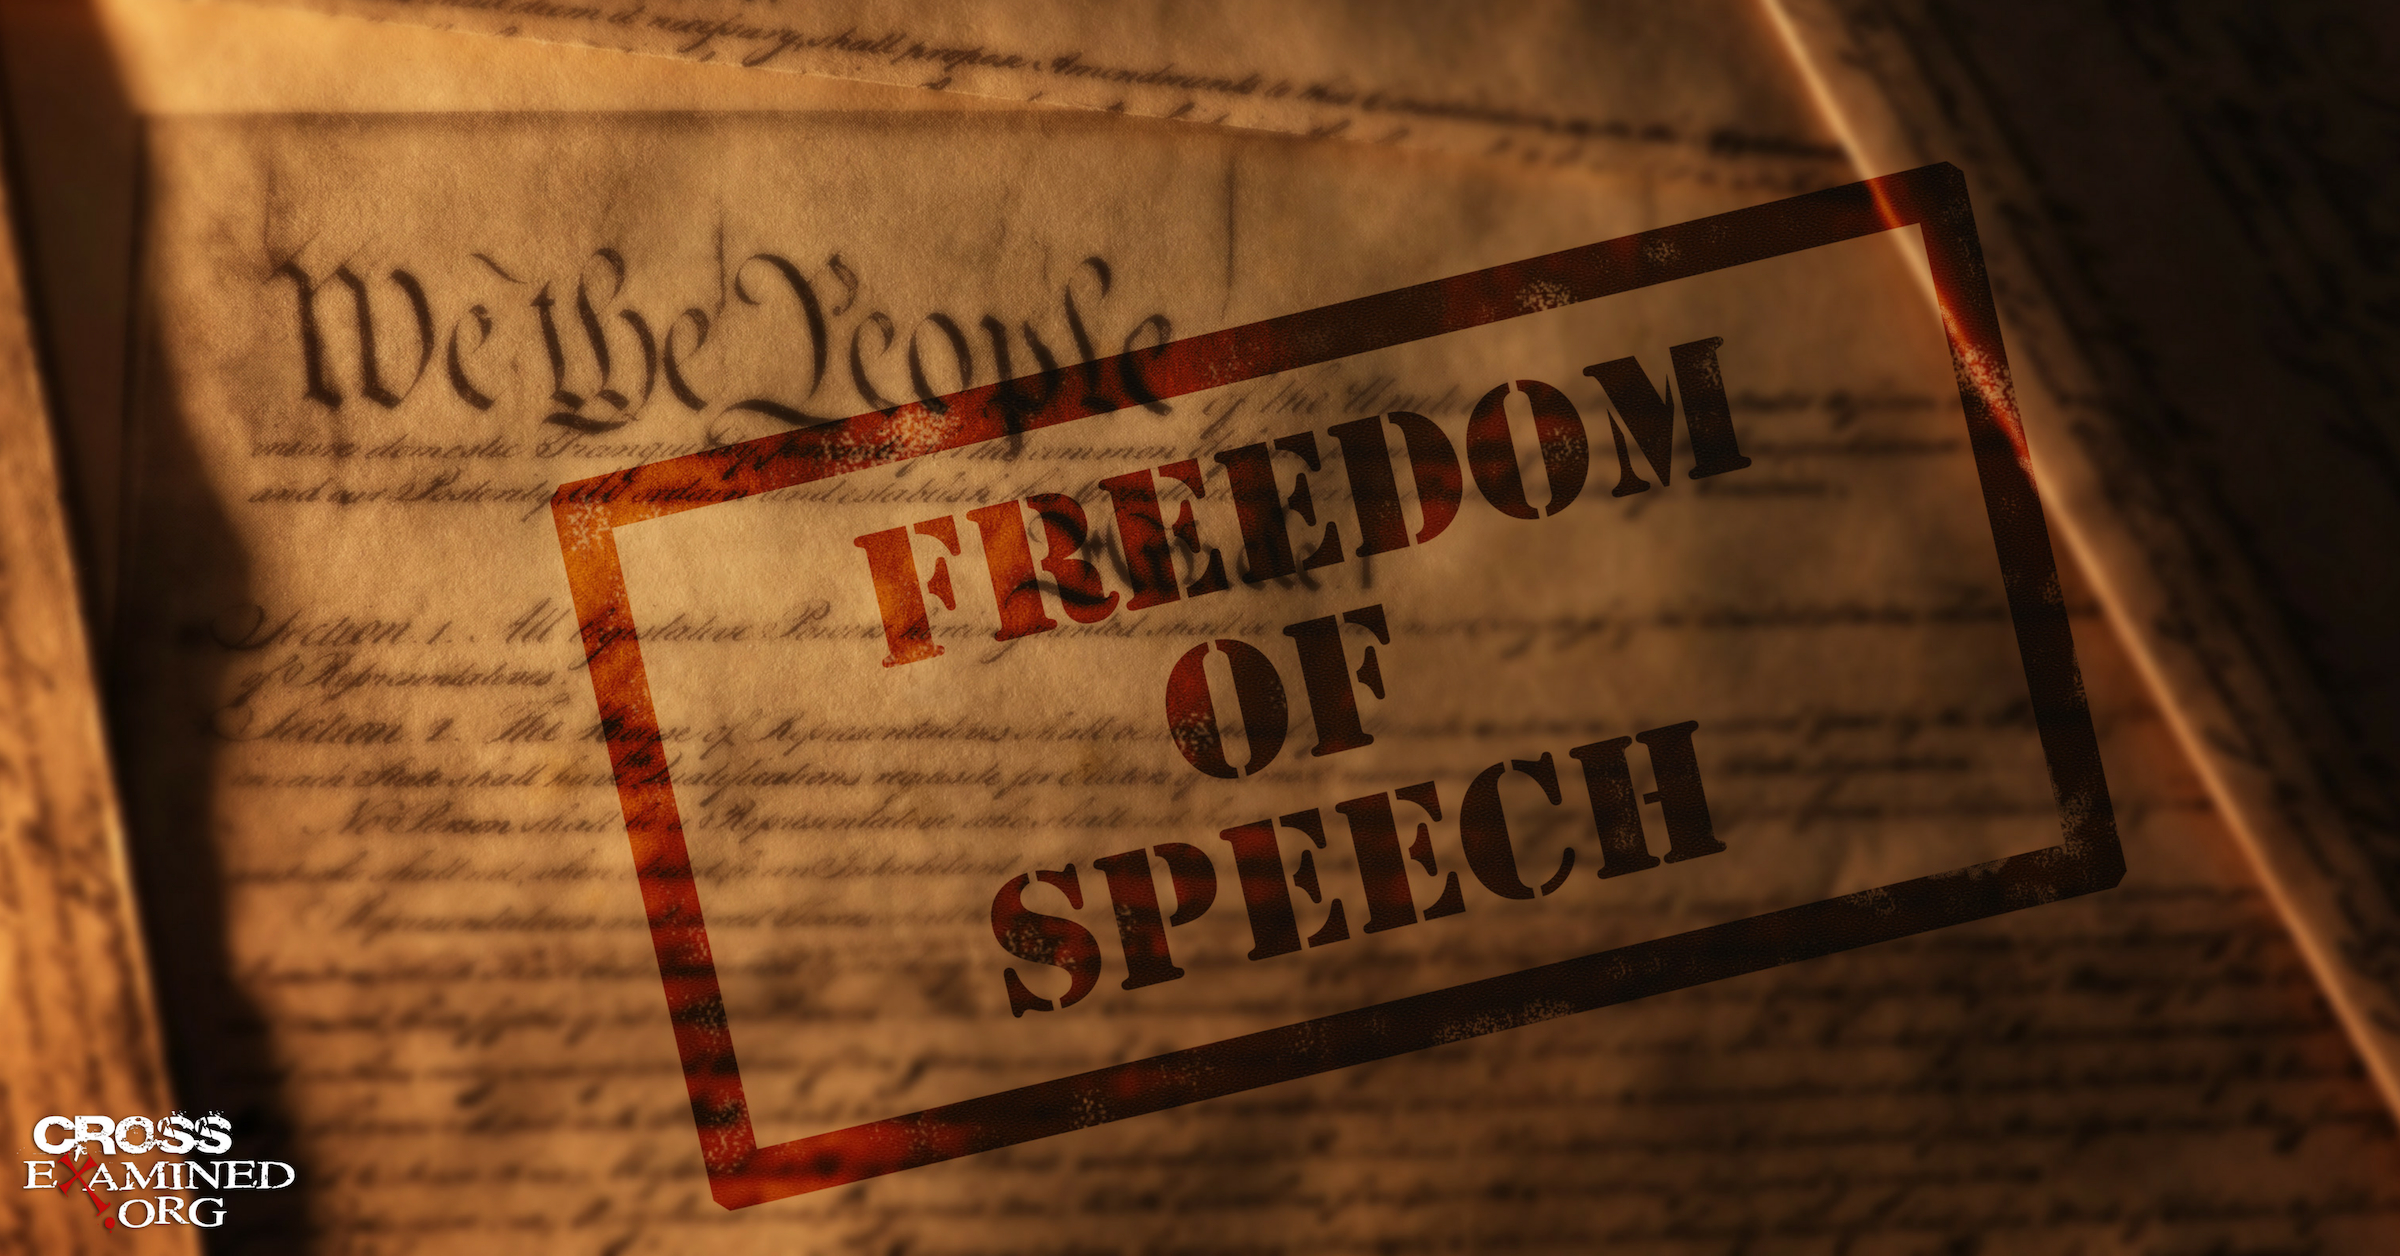 You Can't Preach the Gospel without Freedom